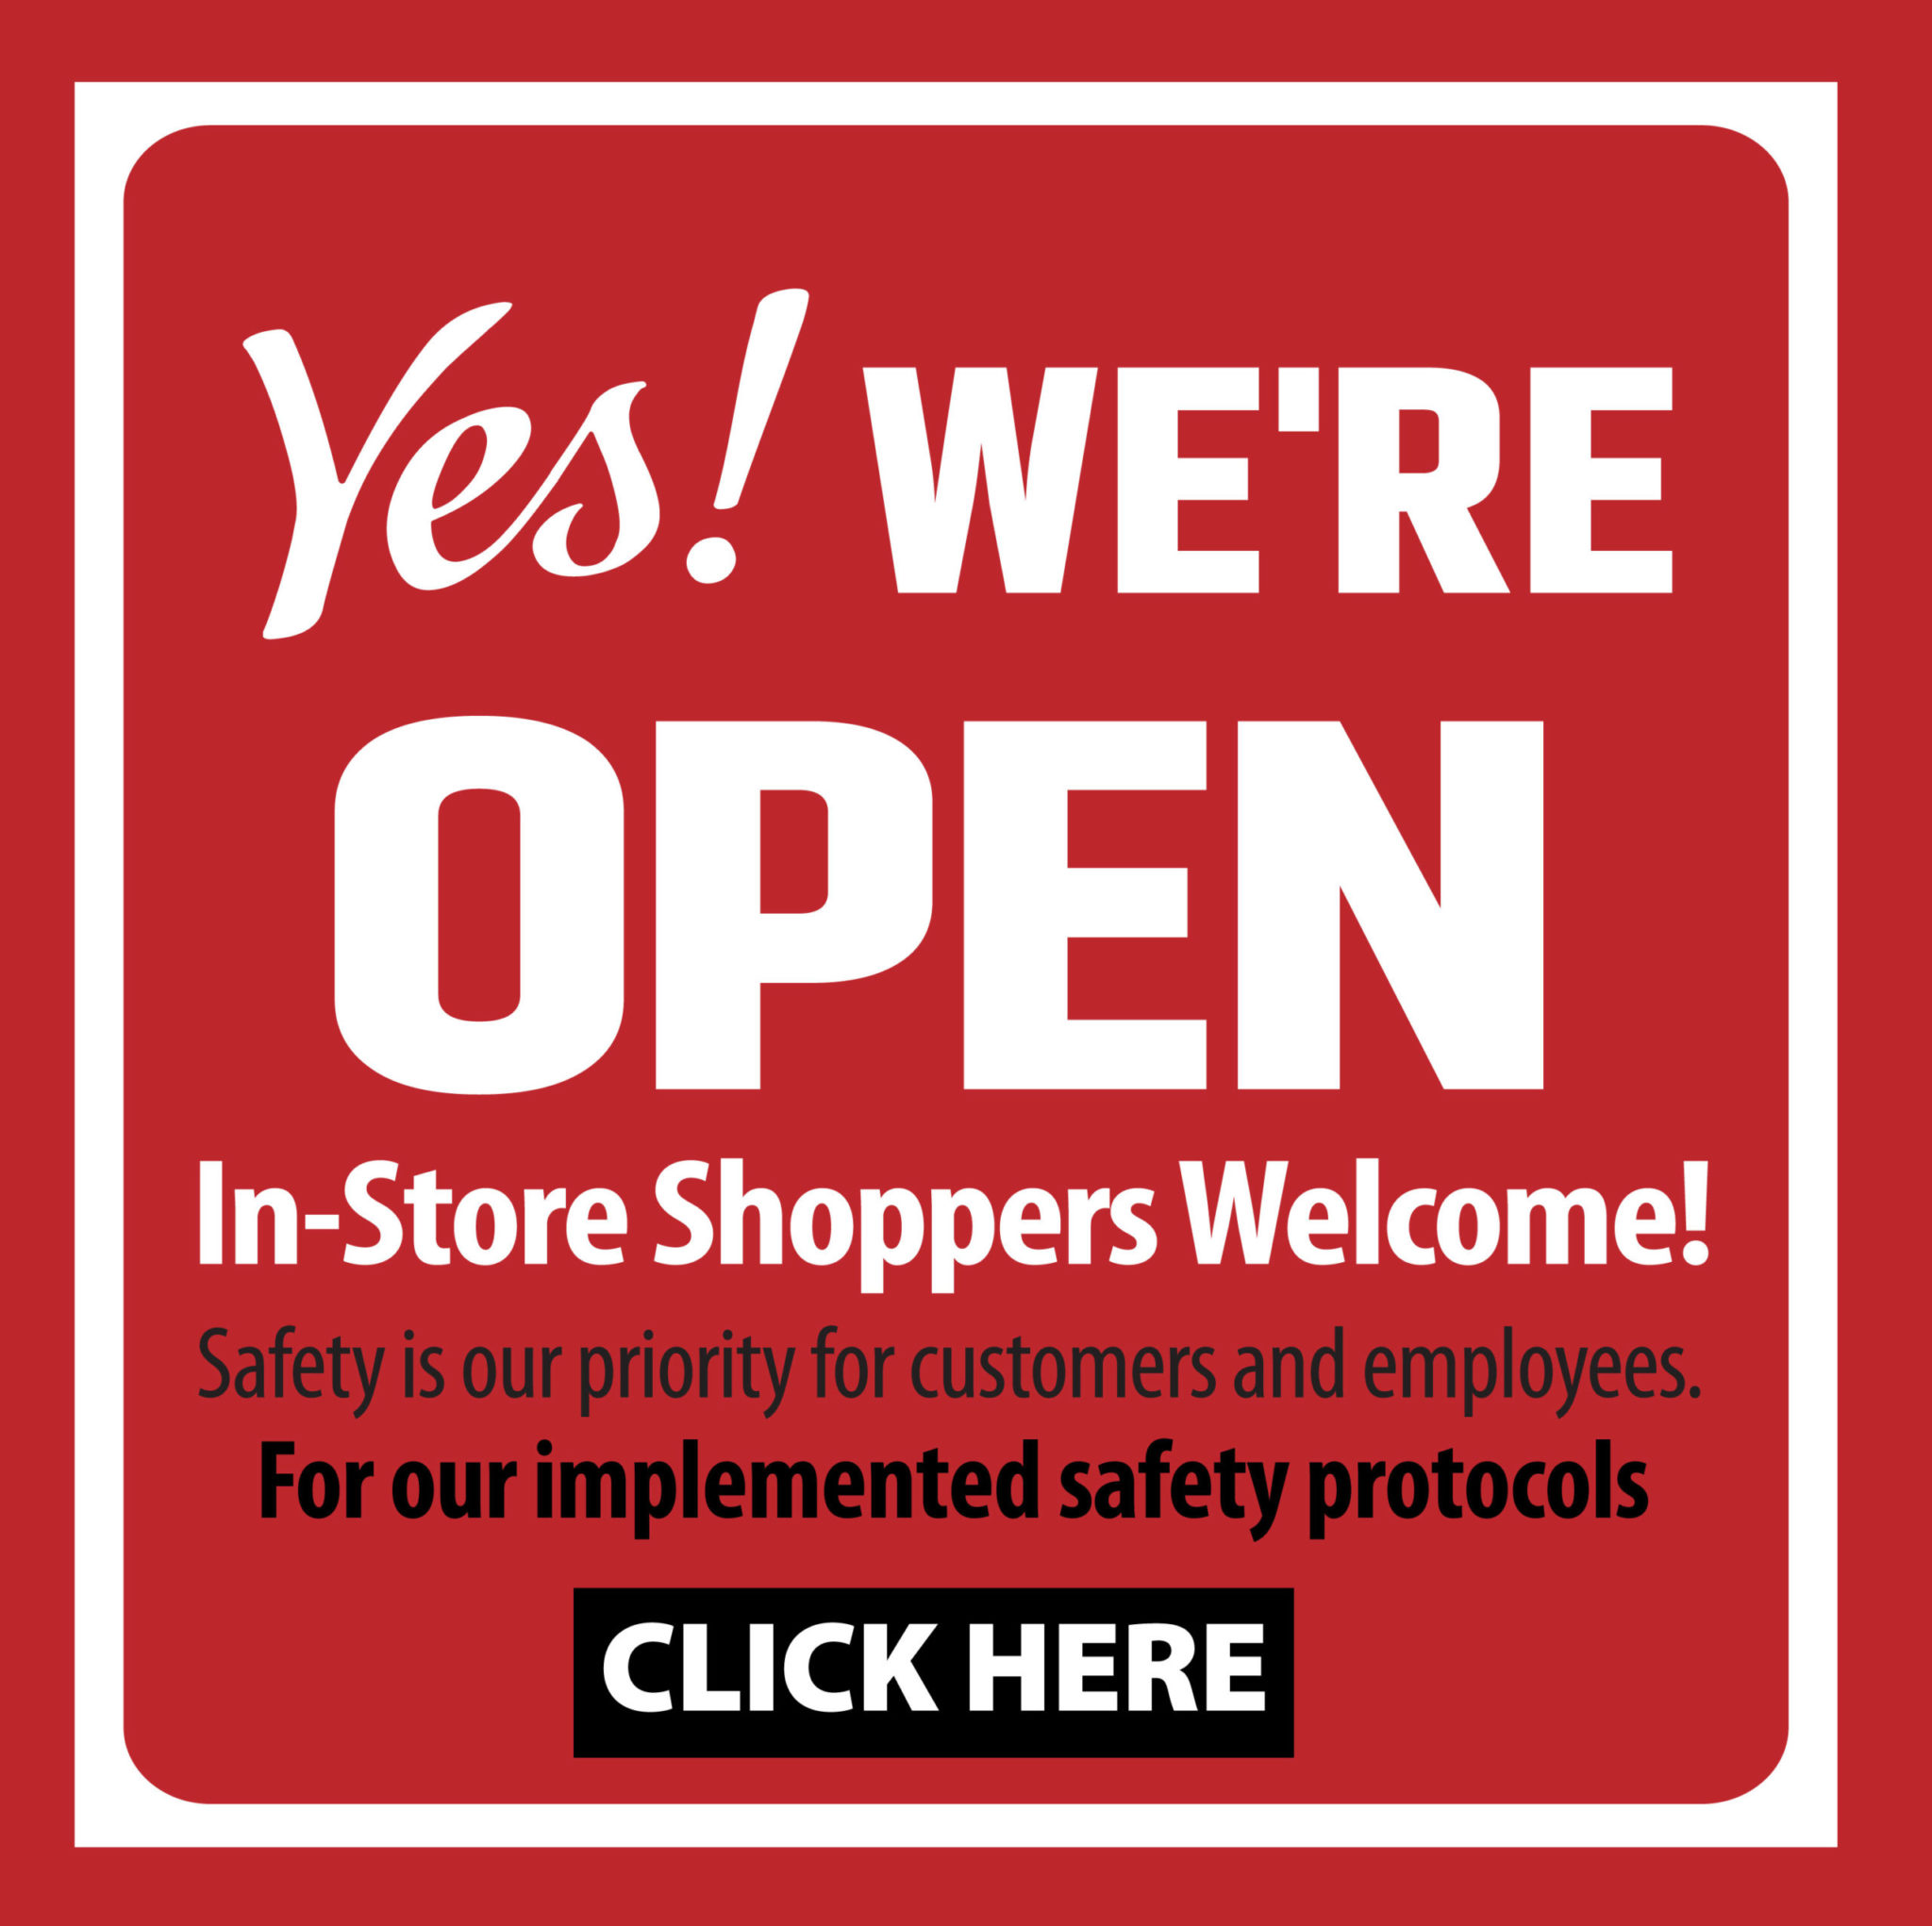 Our Stores are Open